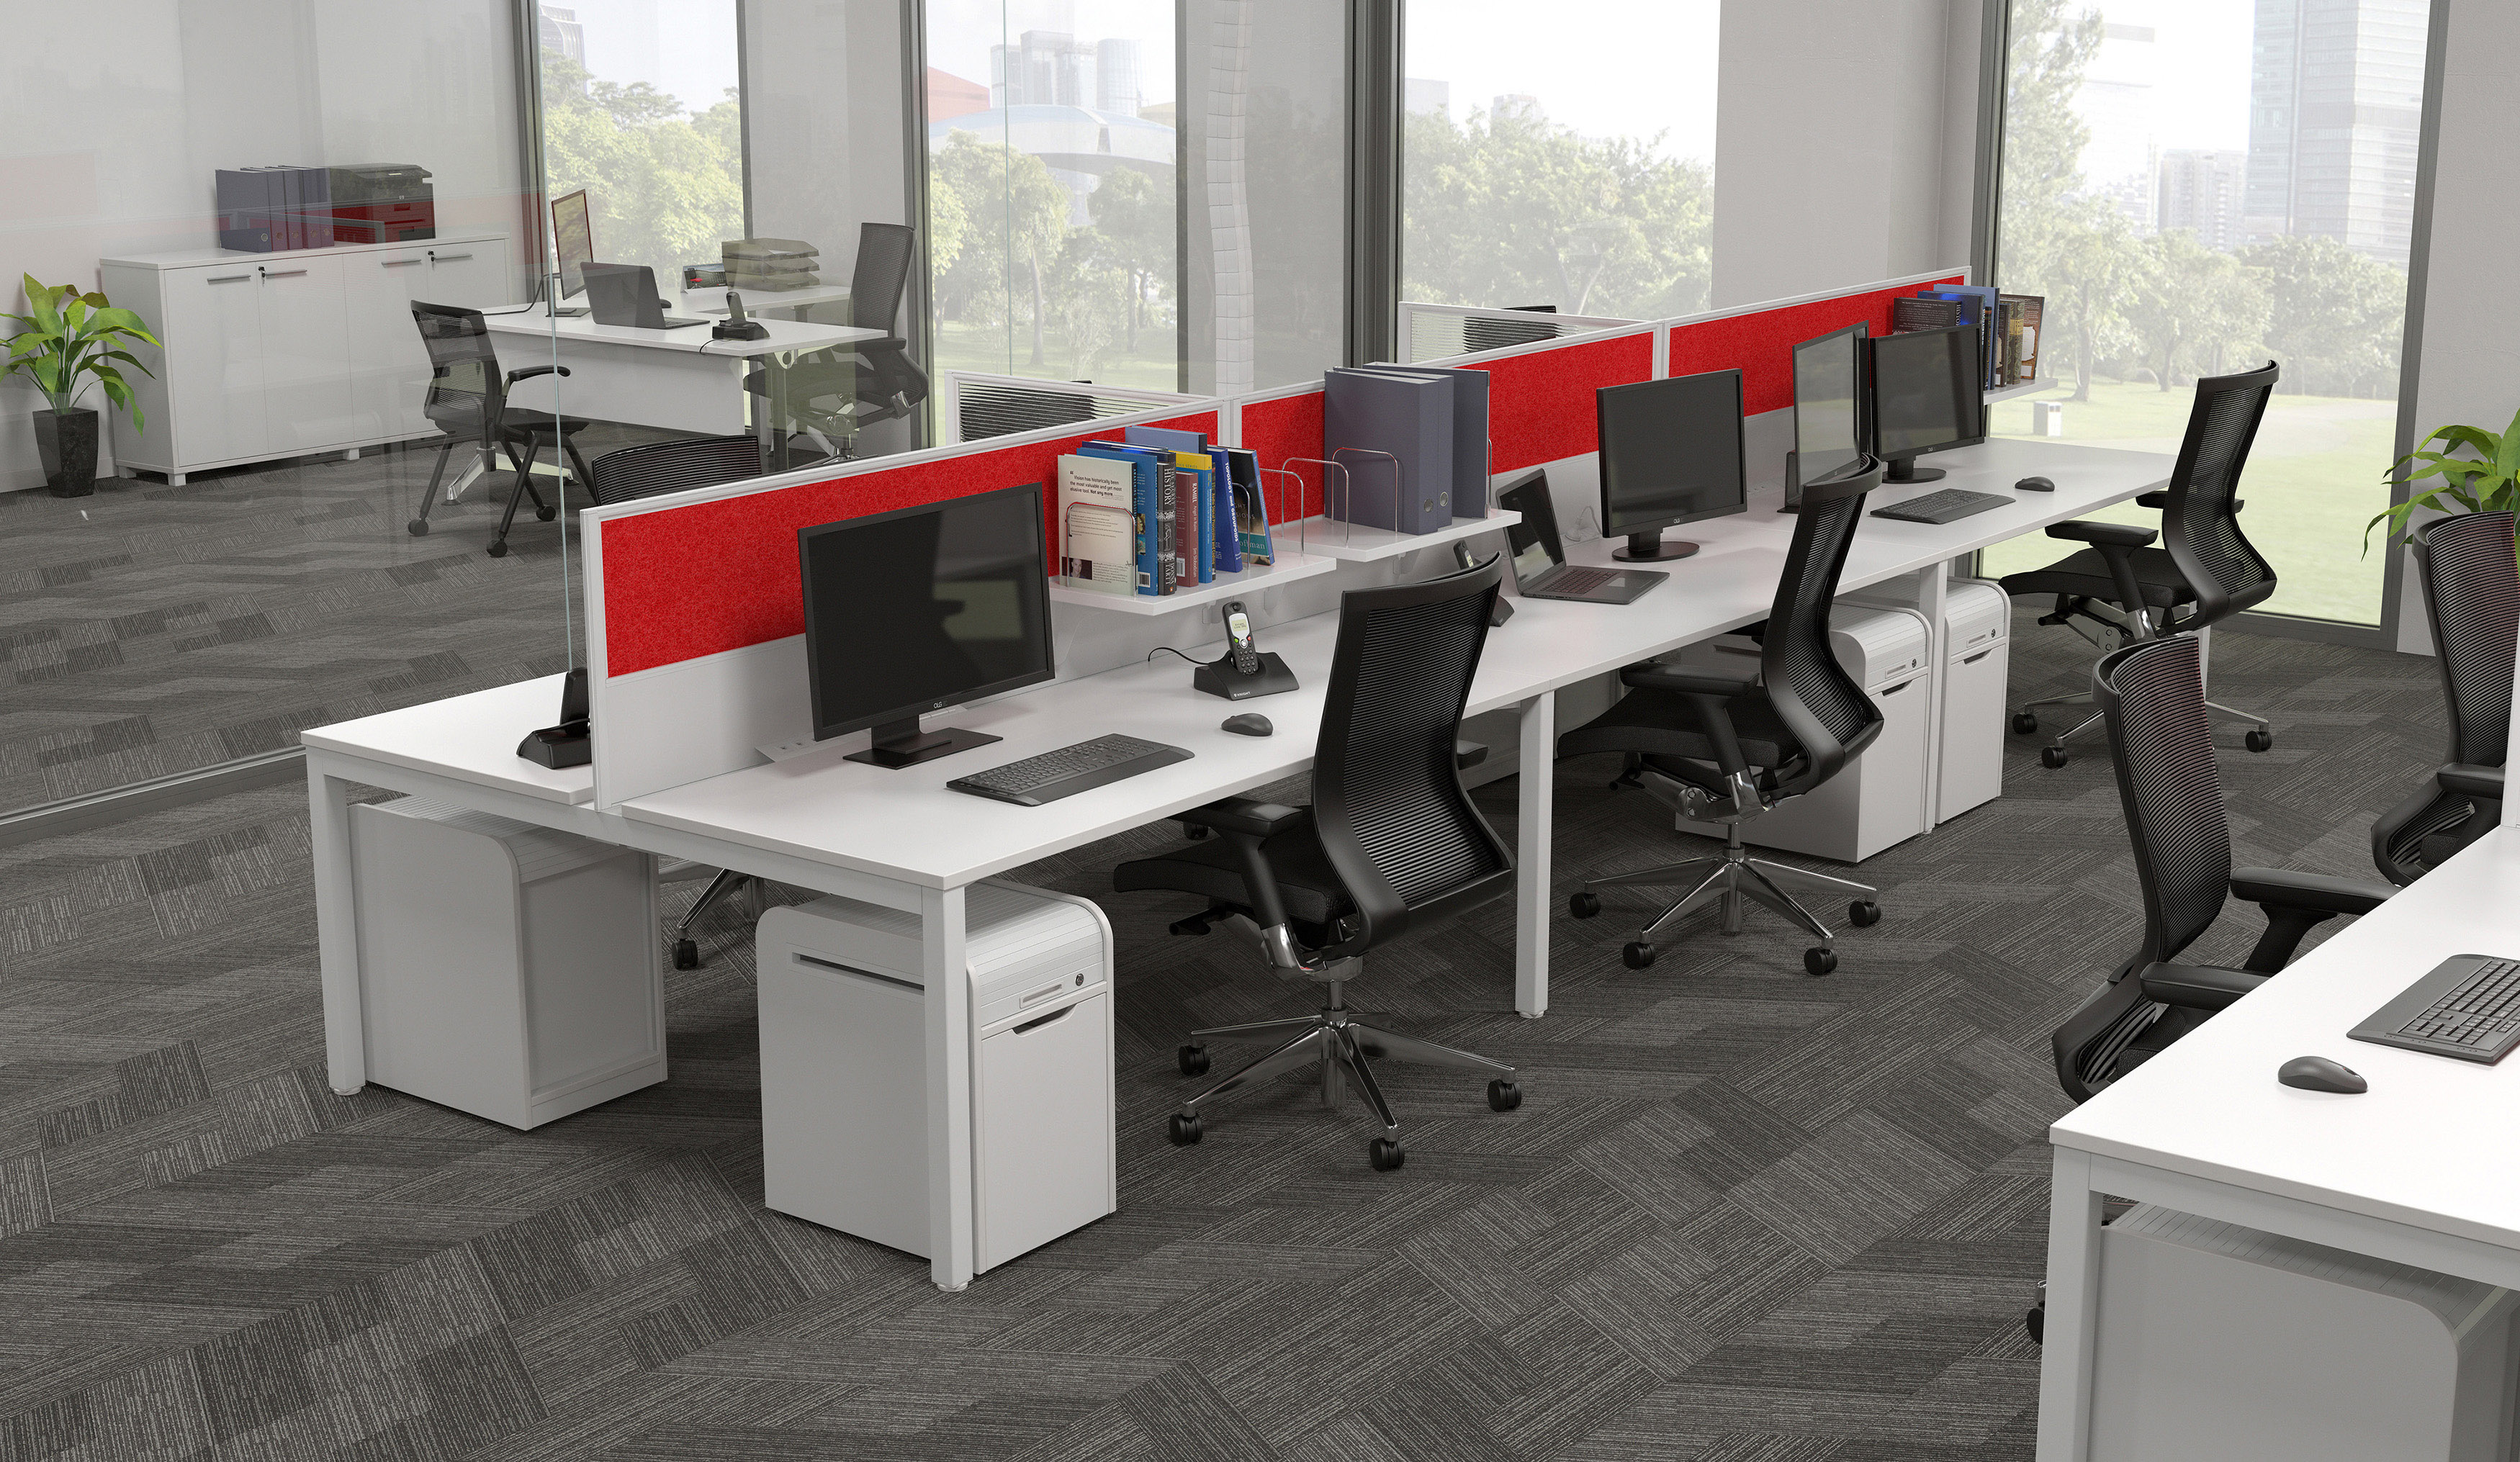 White 6 Person Workstation with Red Desk Screens